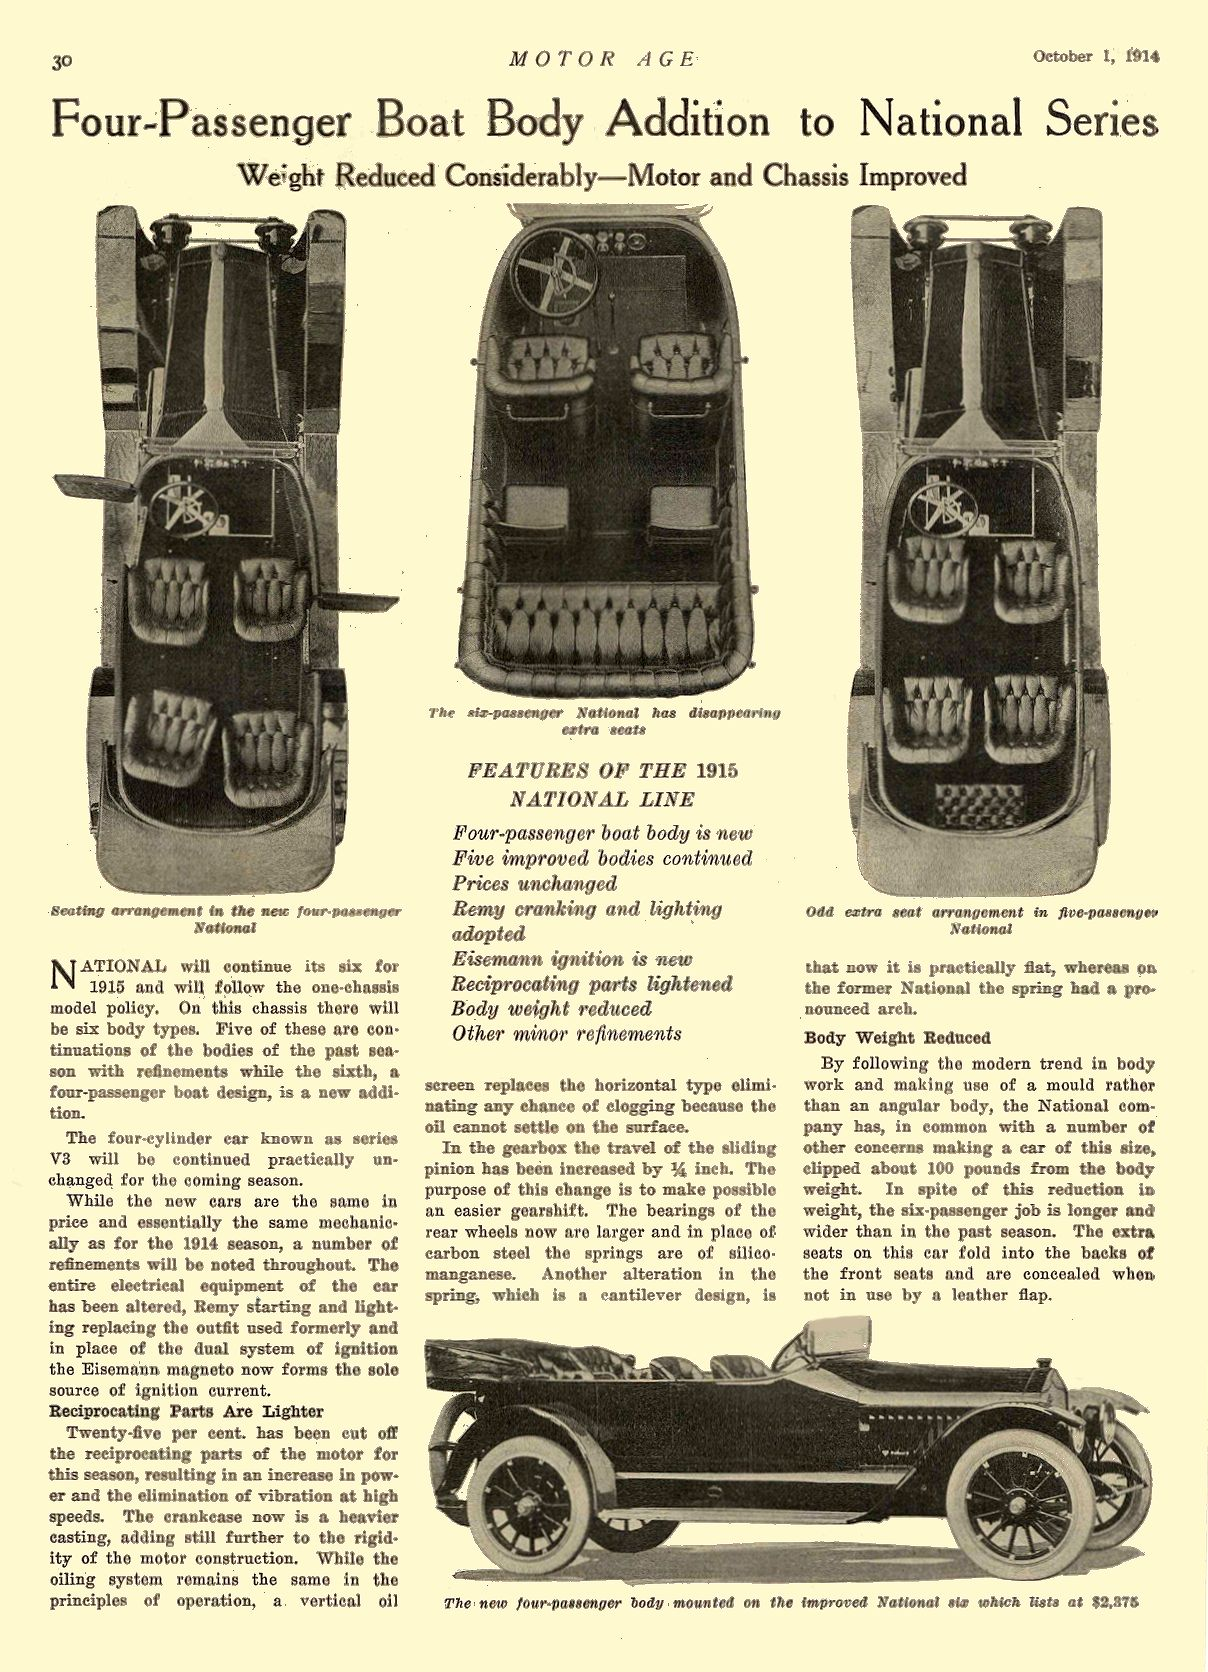 1914 10 1 1915 NATIONAL Article Four-Passenger Boat Body Addition to National Series National Motor Vehicle Co. Indianapolis, IND MOTOR AGE October 1, 1914 8.5″x12″ page 30